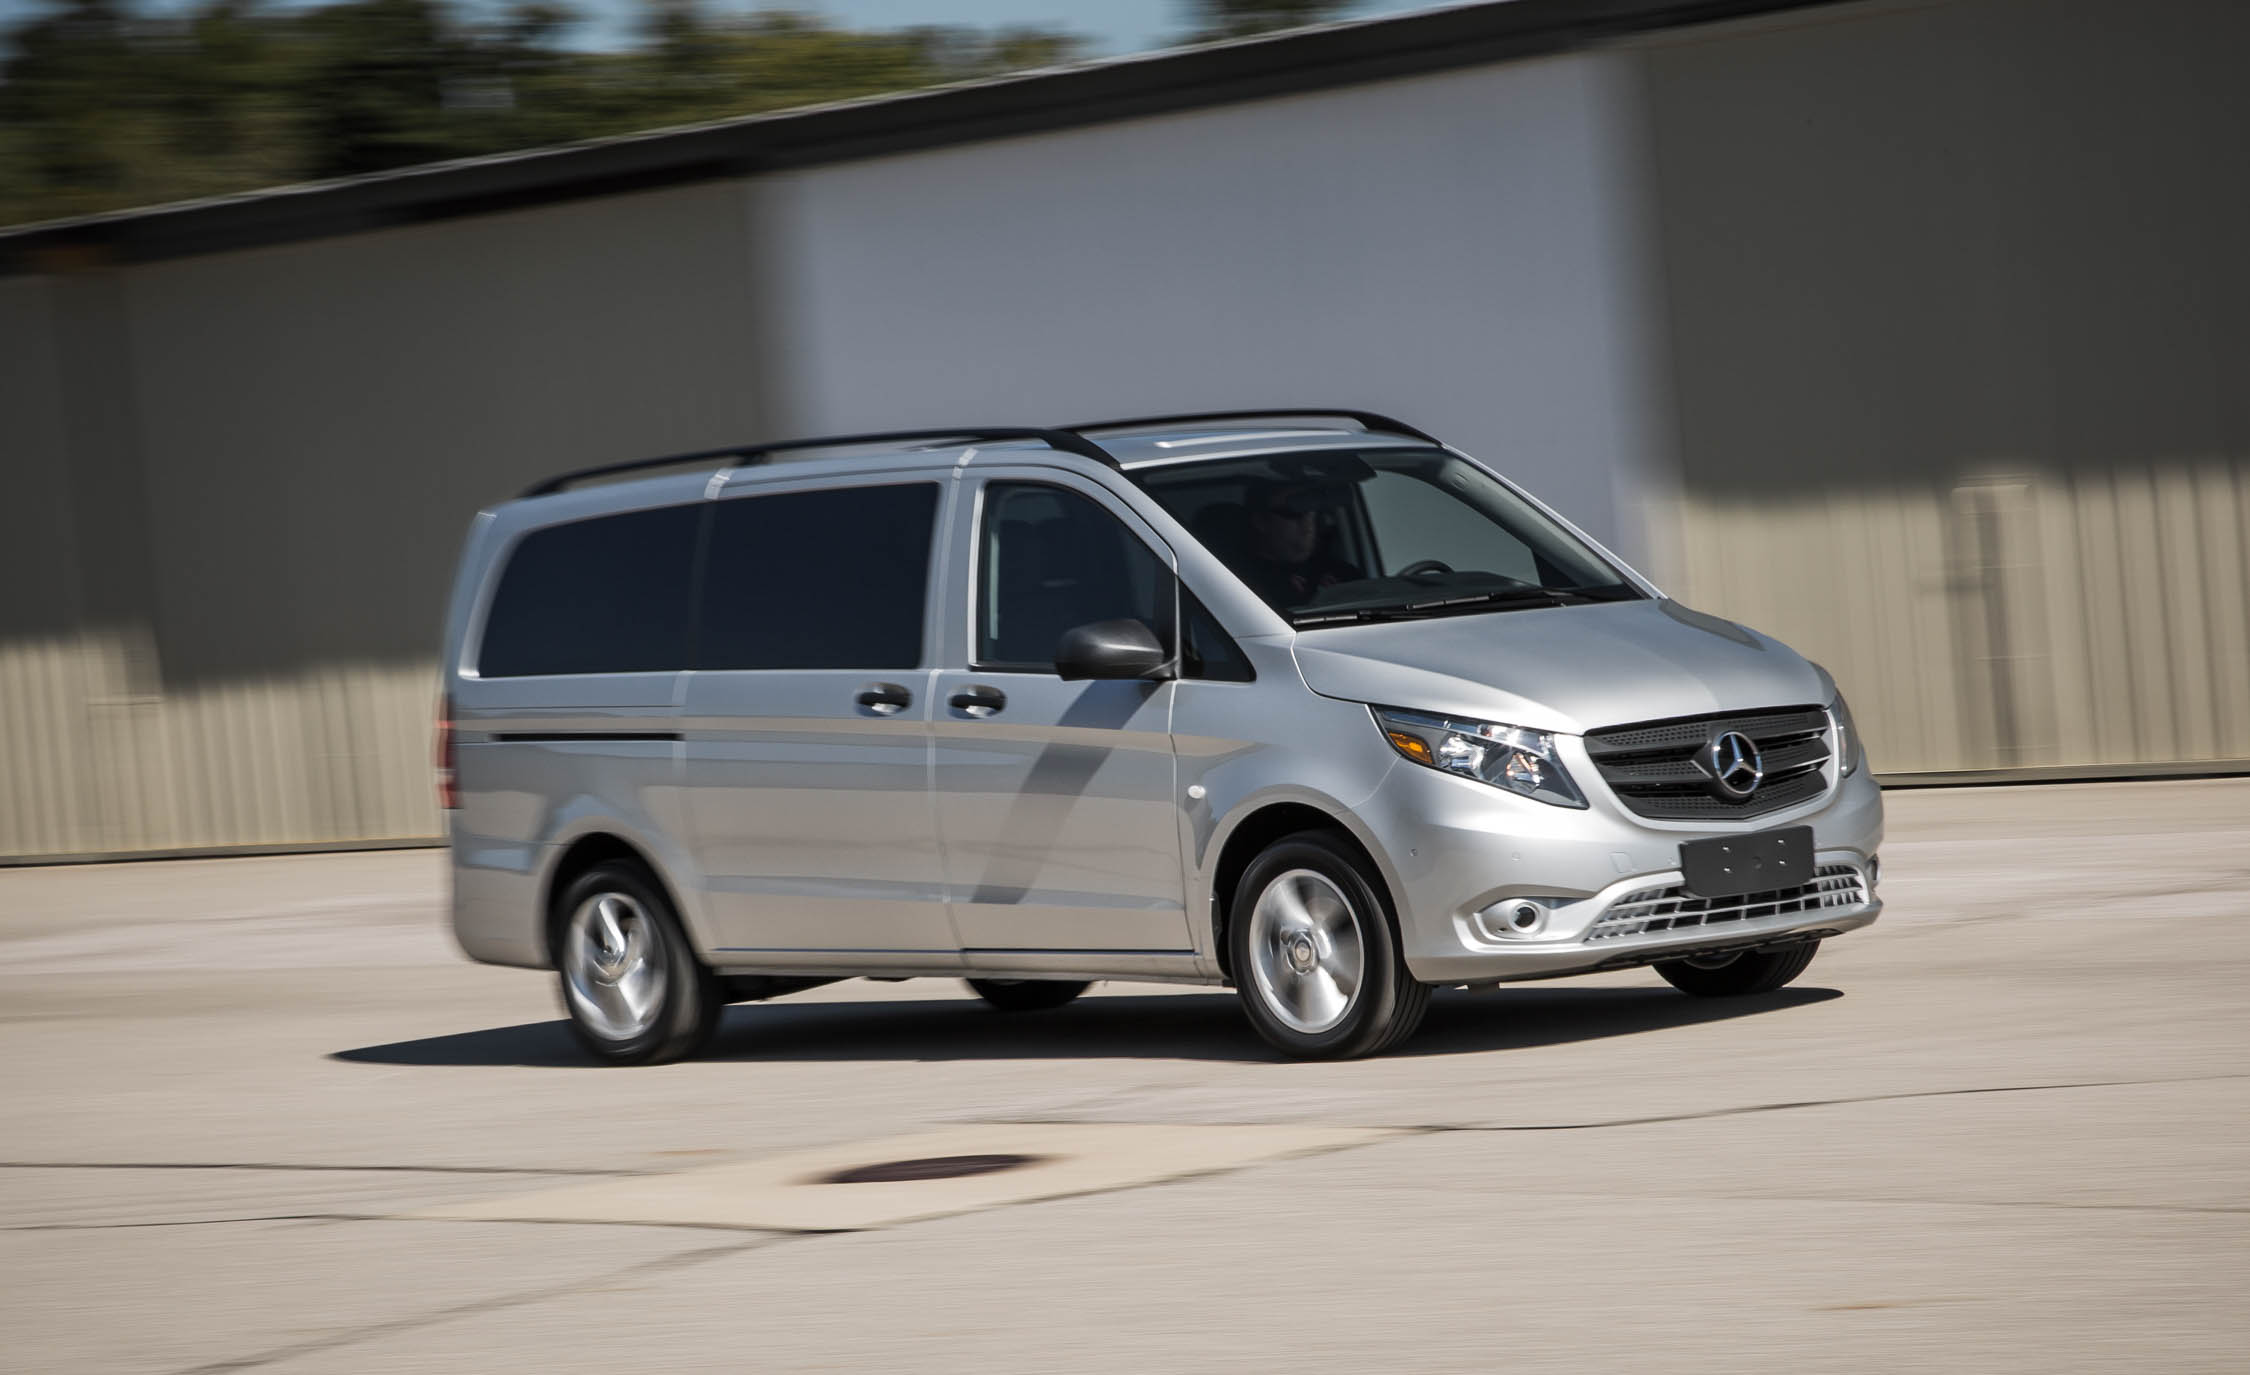 2016 Mercedes Benz Metris (Photo 14 of 30)